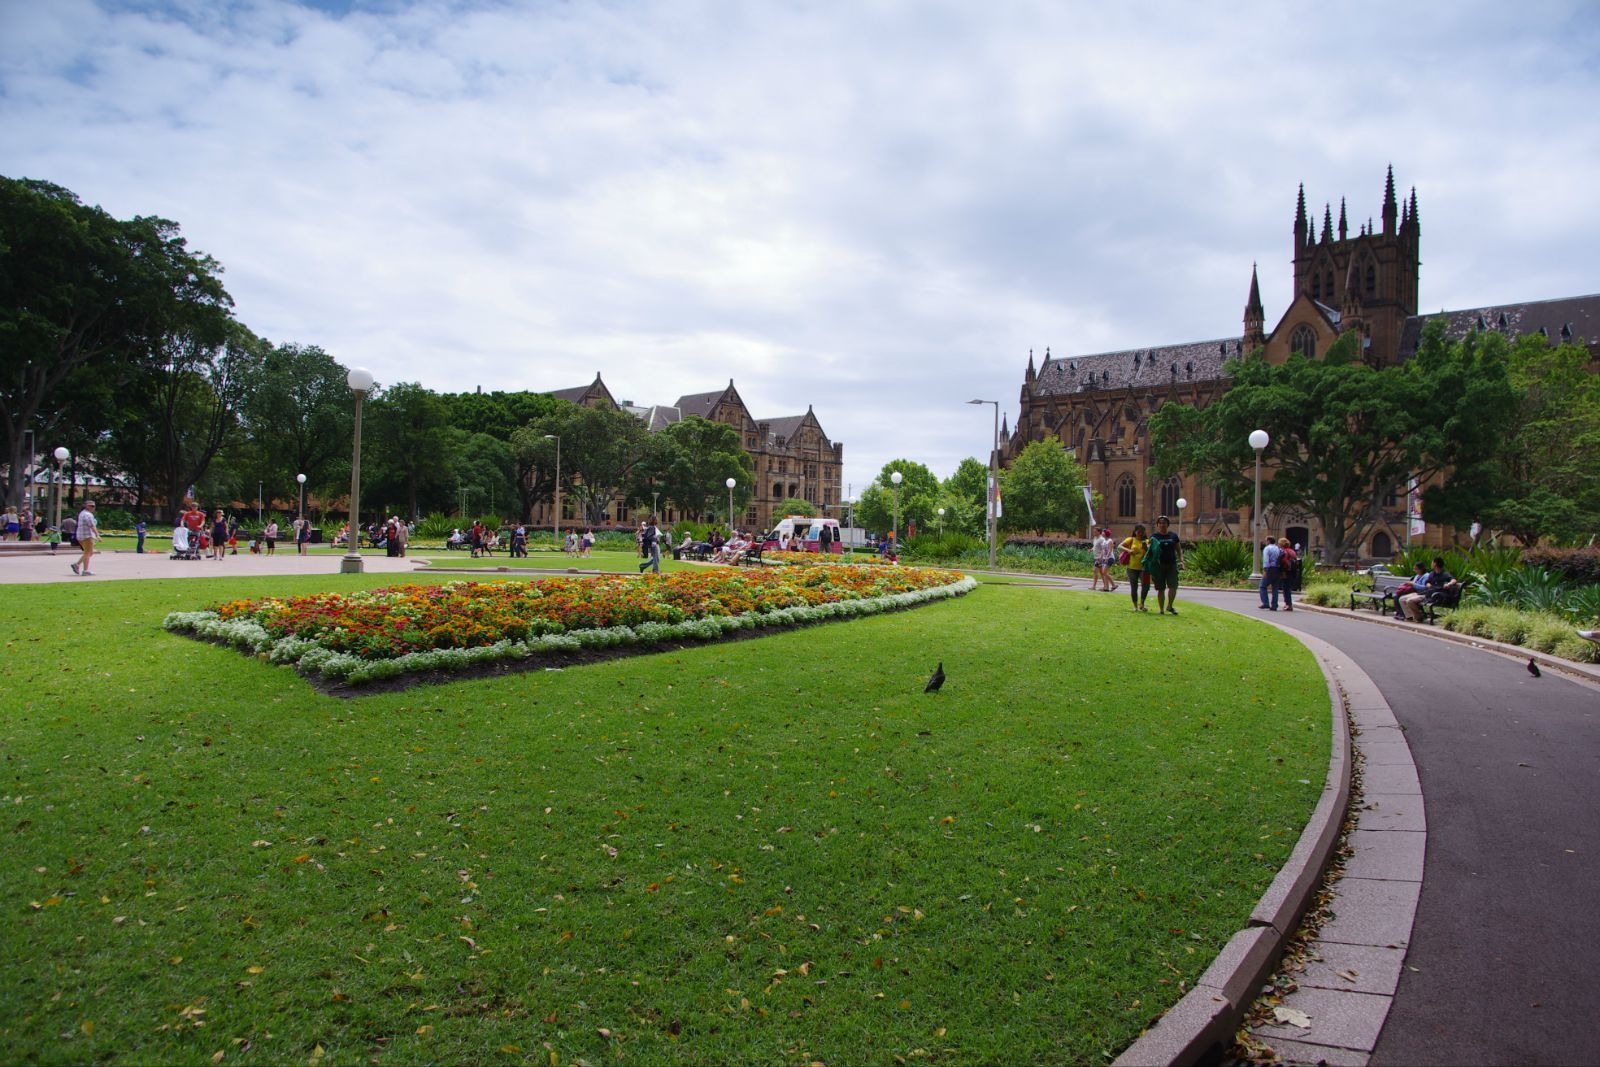 Sydney's oldest city park